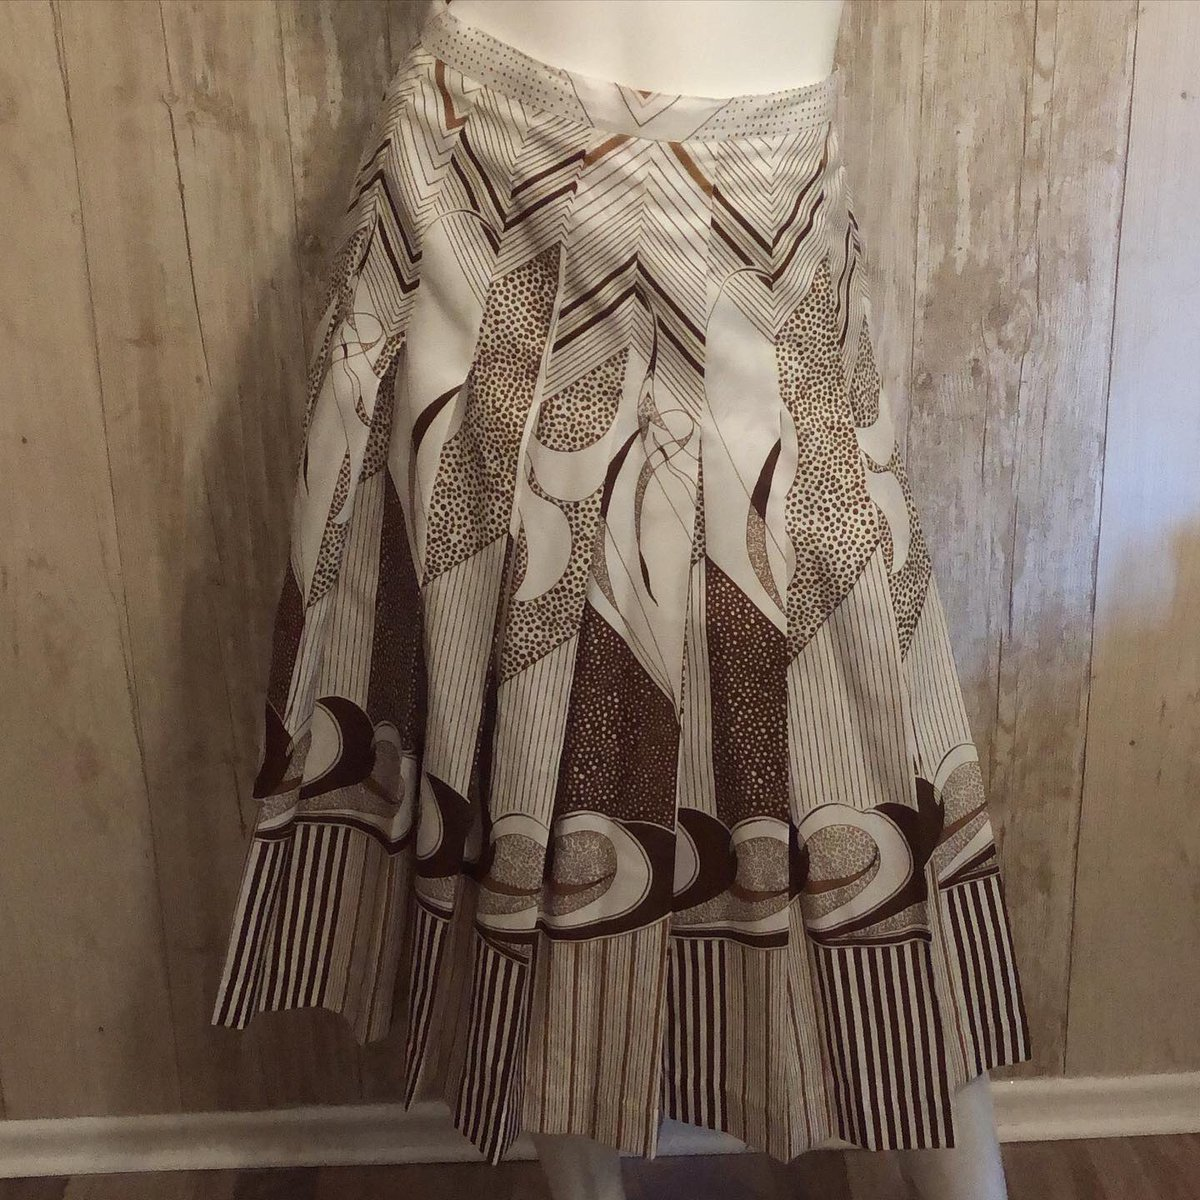 """Chocolate brown/white with Art Deco print and pleats. So pretty!  waist: 31.5"""". Length:28"""".  Please message if interested #vintage #vintagefashion #vintageclothing #vintageclothingforsale #vintageskirt #pleatedskirt #artdecostyle #summerskirtpic.twitter.com/Kii1zGtxB0"""